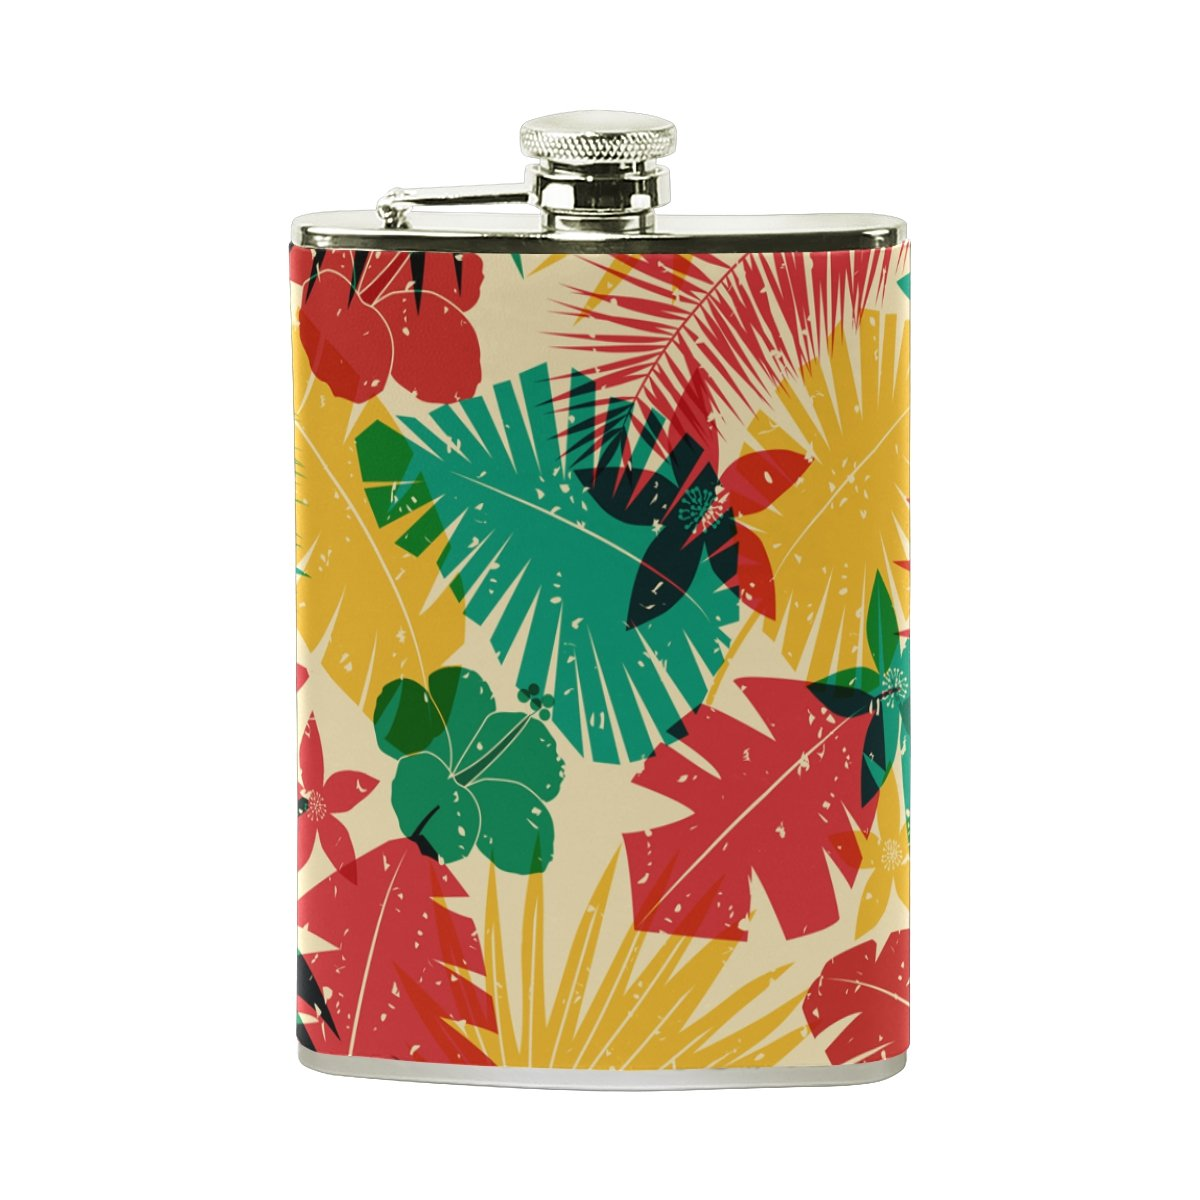 Tropical Floral Print Portable Leather Stainless Steel Hip Flask Alcohol Whiskey Liquor Wine Pot Flagon Pocket Bottle - 8 oz